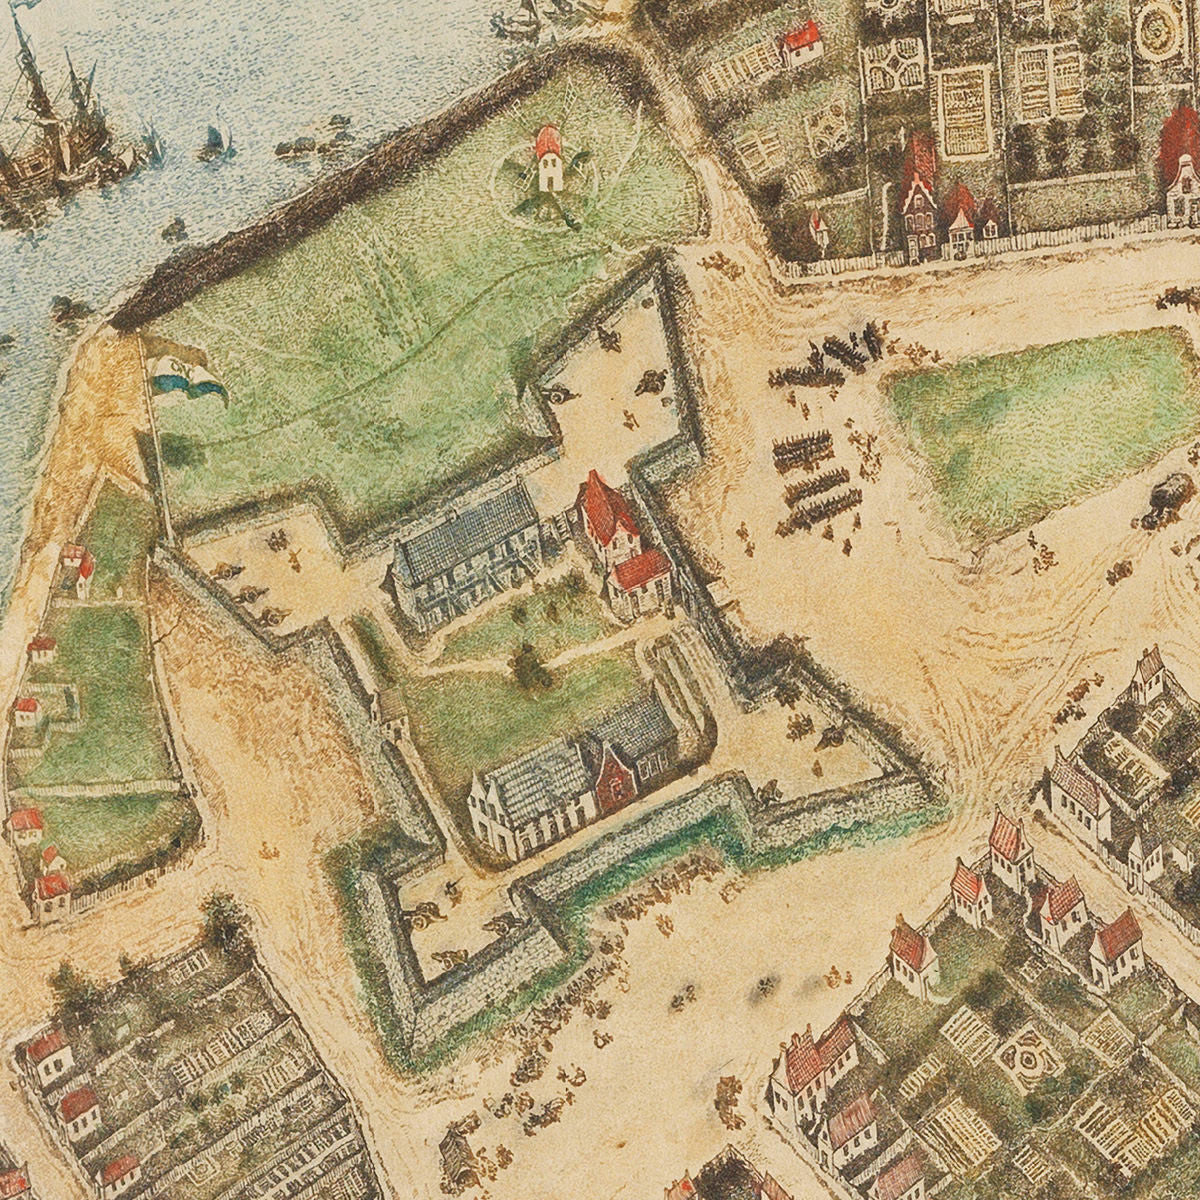 New York, 1660, New Amsterdam, Castello Plan | Battlemaps.us on roosevelt family, amsterdam red-light section map, charleston map, peter minuit map, pequot war, province of new york, new baghdad map, anne hutchinson, new netherlands, dutch west india company, amsterdam ny map, philadelphia map, kiawah island on a map, fort orange map, dutch cape colony map, world trade towers map, colonial america, new sweden, samuel de champlain, king philip's war, livingston manor map, castello plan map, new suez canal map, amsterdam sights map, dominion of new england, peter minuit, new england, treaty of paris 1783 on map, john peter zenger, new austin map, castello plan, chimney rock on a map, new netherland, peter stuyvesant,